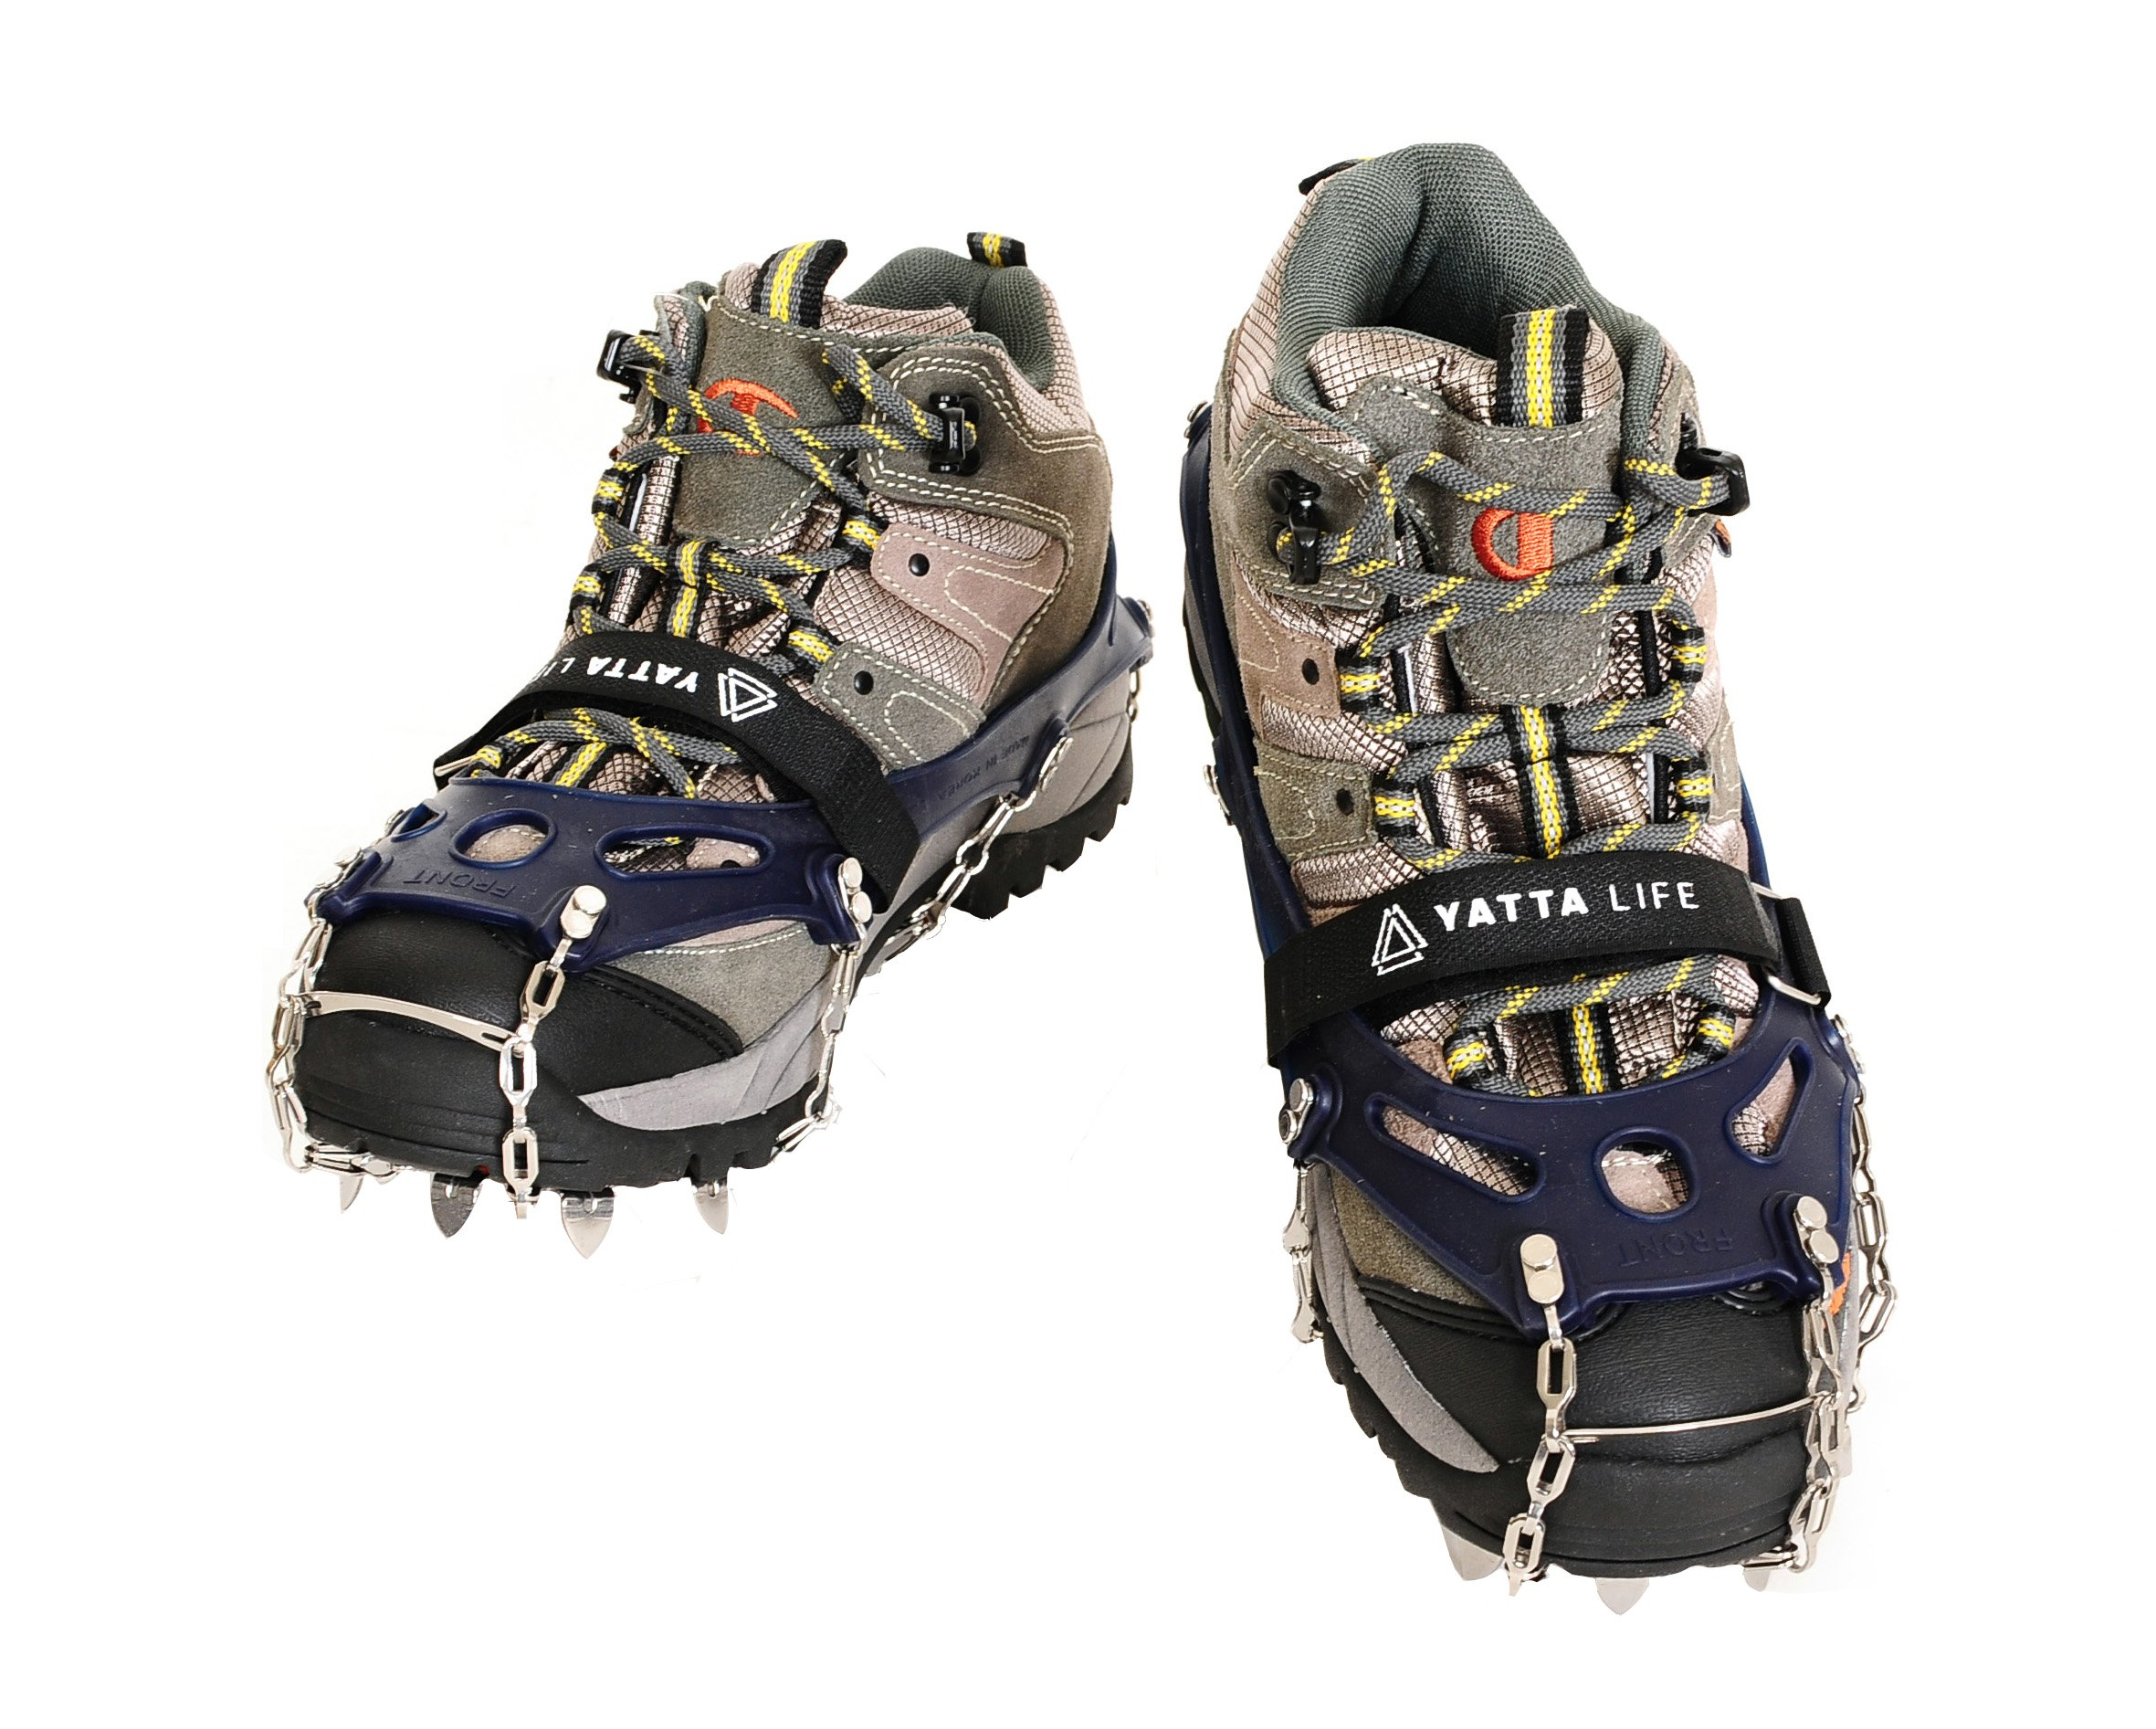 Yatta Life Heavy Duty 14-Spikes Ice Grip Trail Spikes Snow Cleats Footwear Crampon for Walking, Jogging, or Hiking on Snow and Ice(Medium (Navy Blue) by Yatta Life